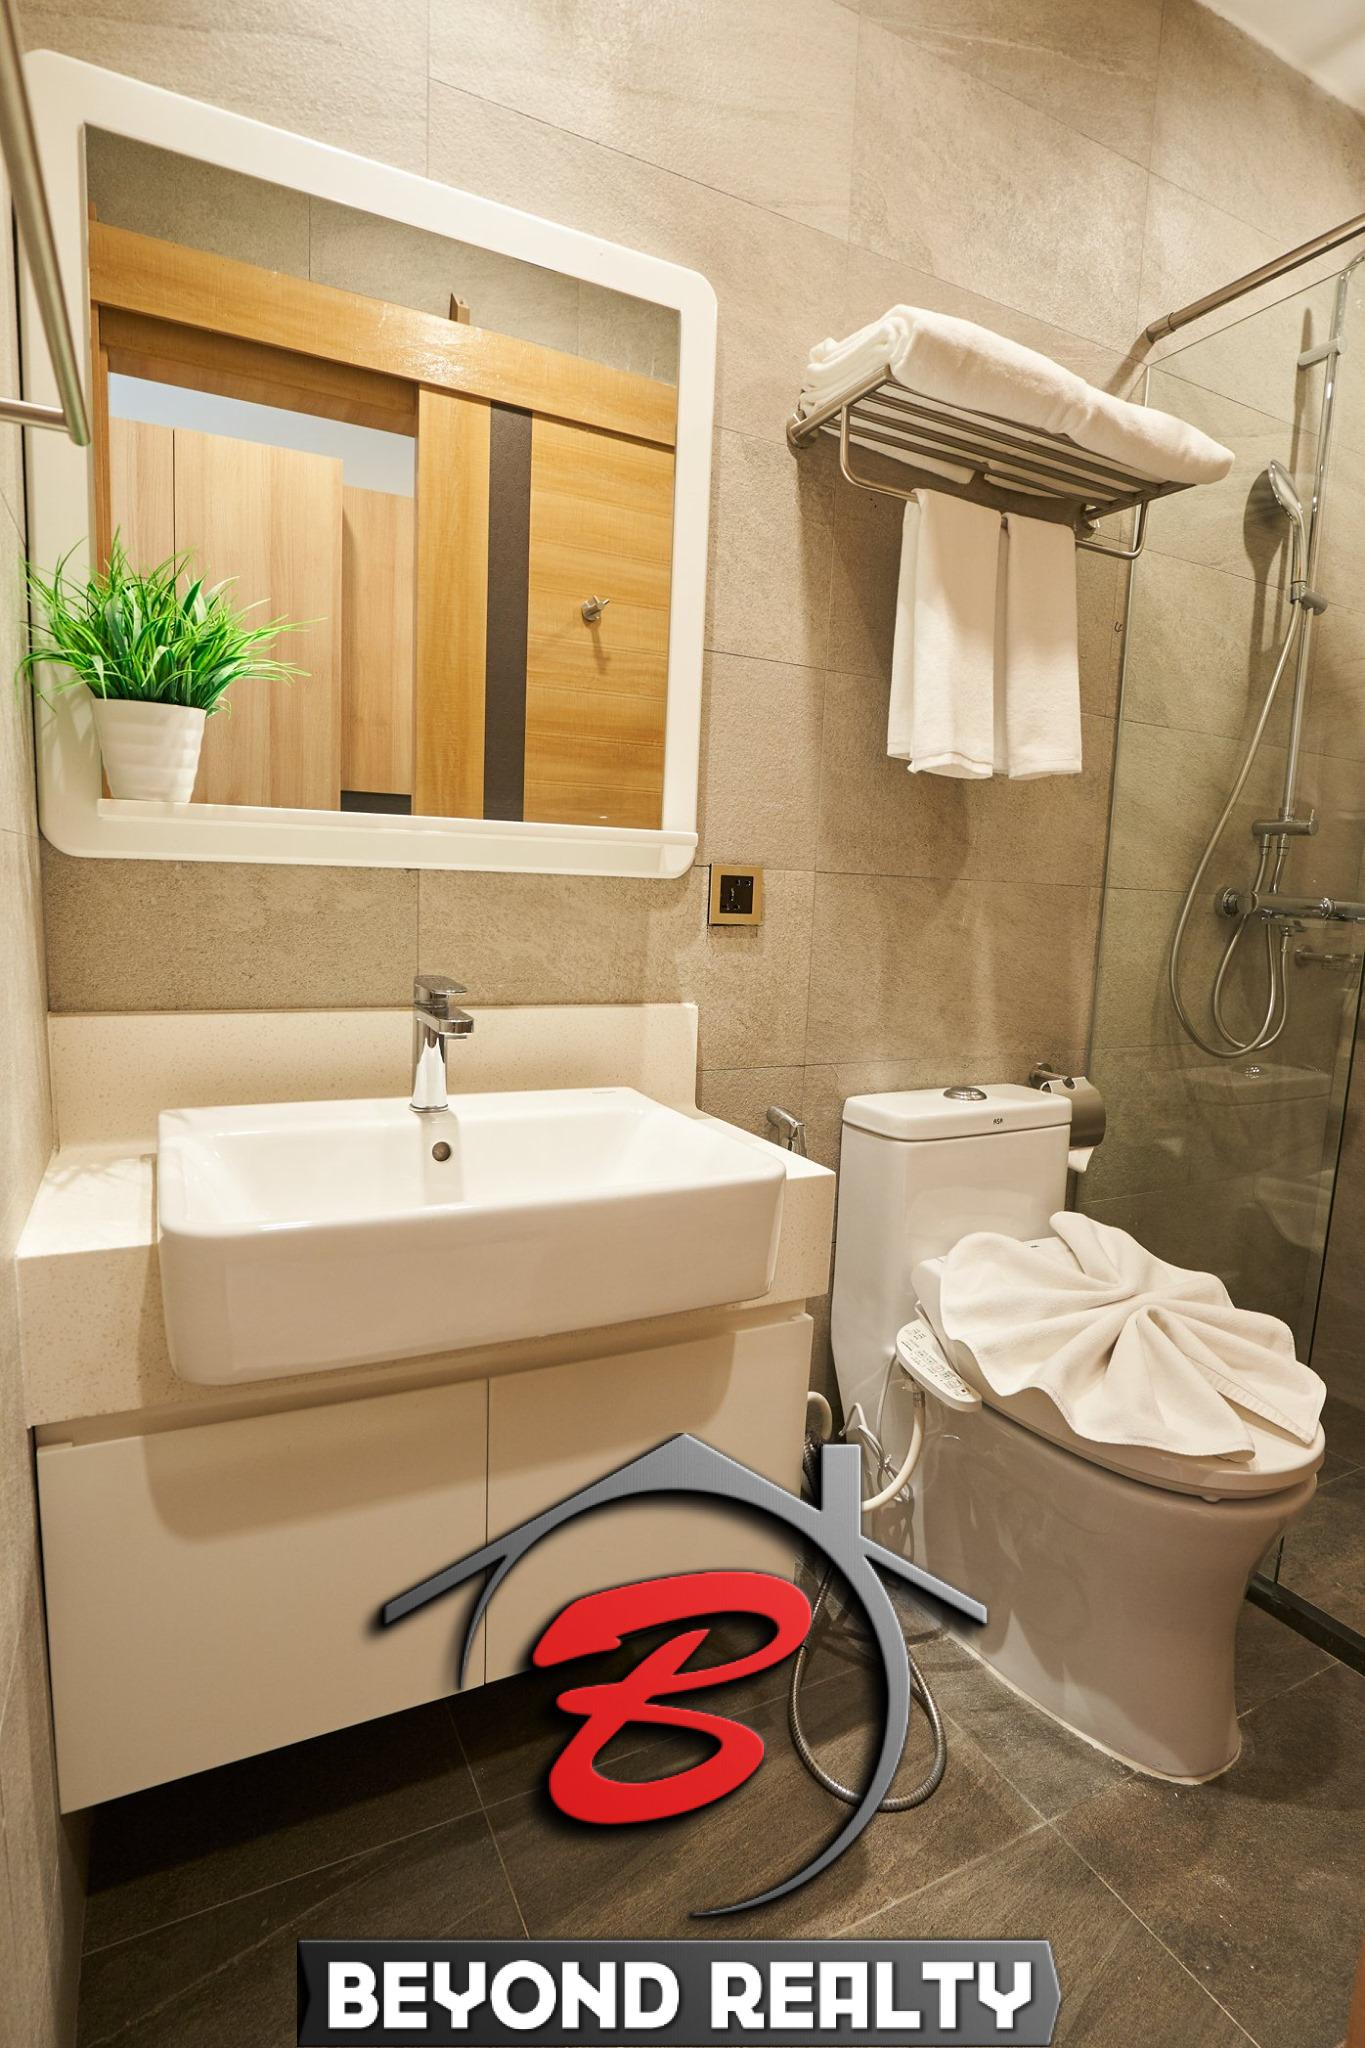 the bathroom of the luxury serviced studio apartment for rent in BKK1 in Phnom Penh Cambodia